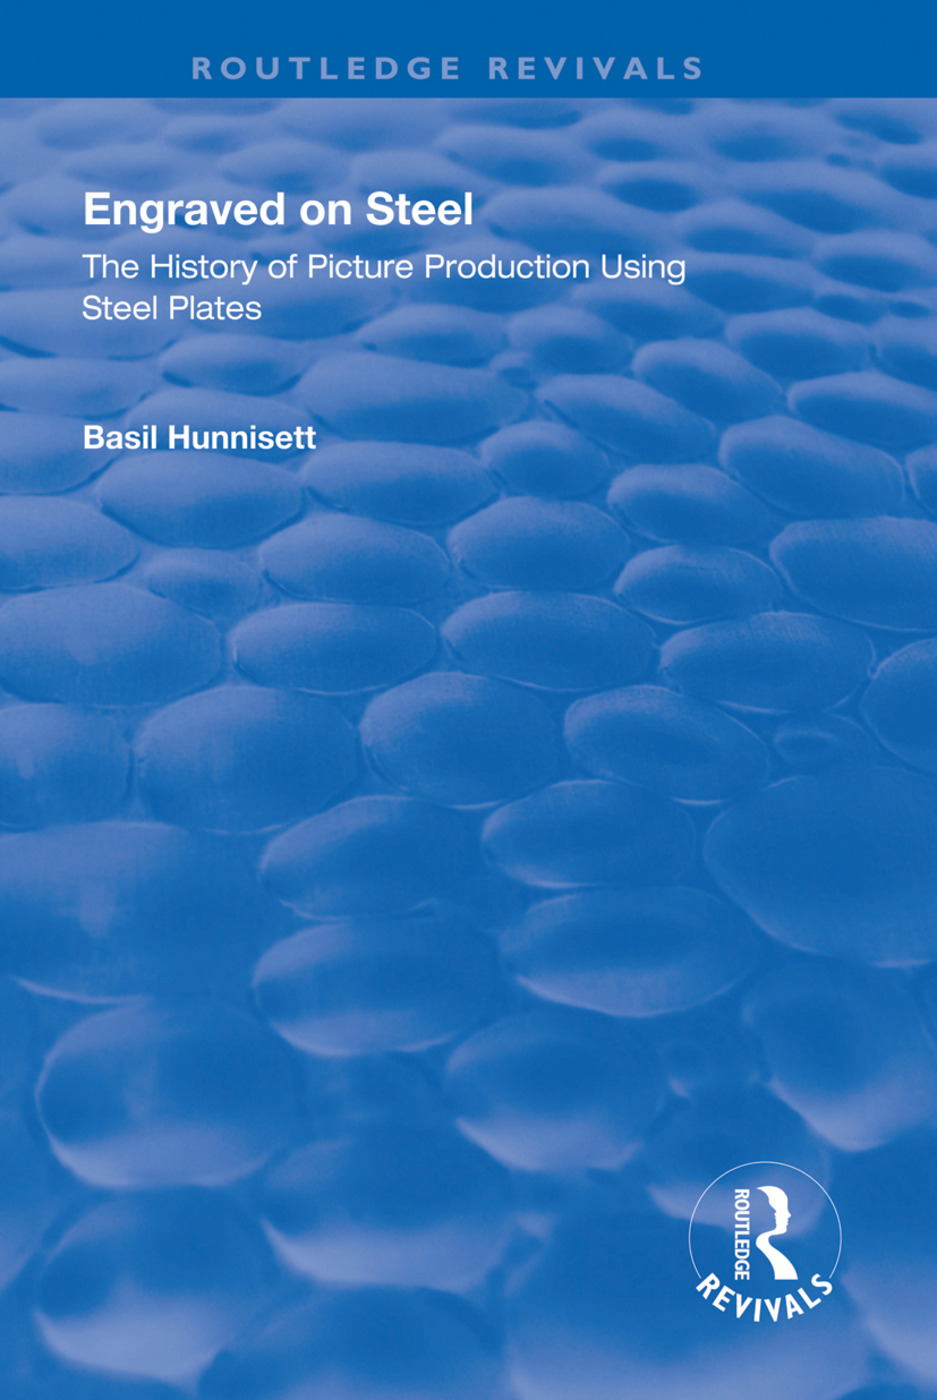 Engraved on Steel: History of Picture Production Using Steel Plates